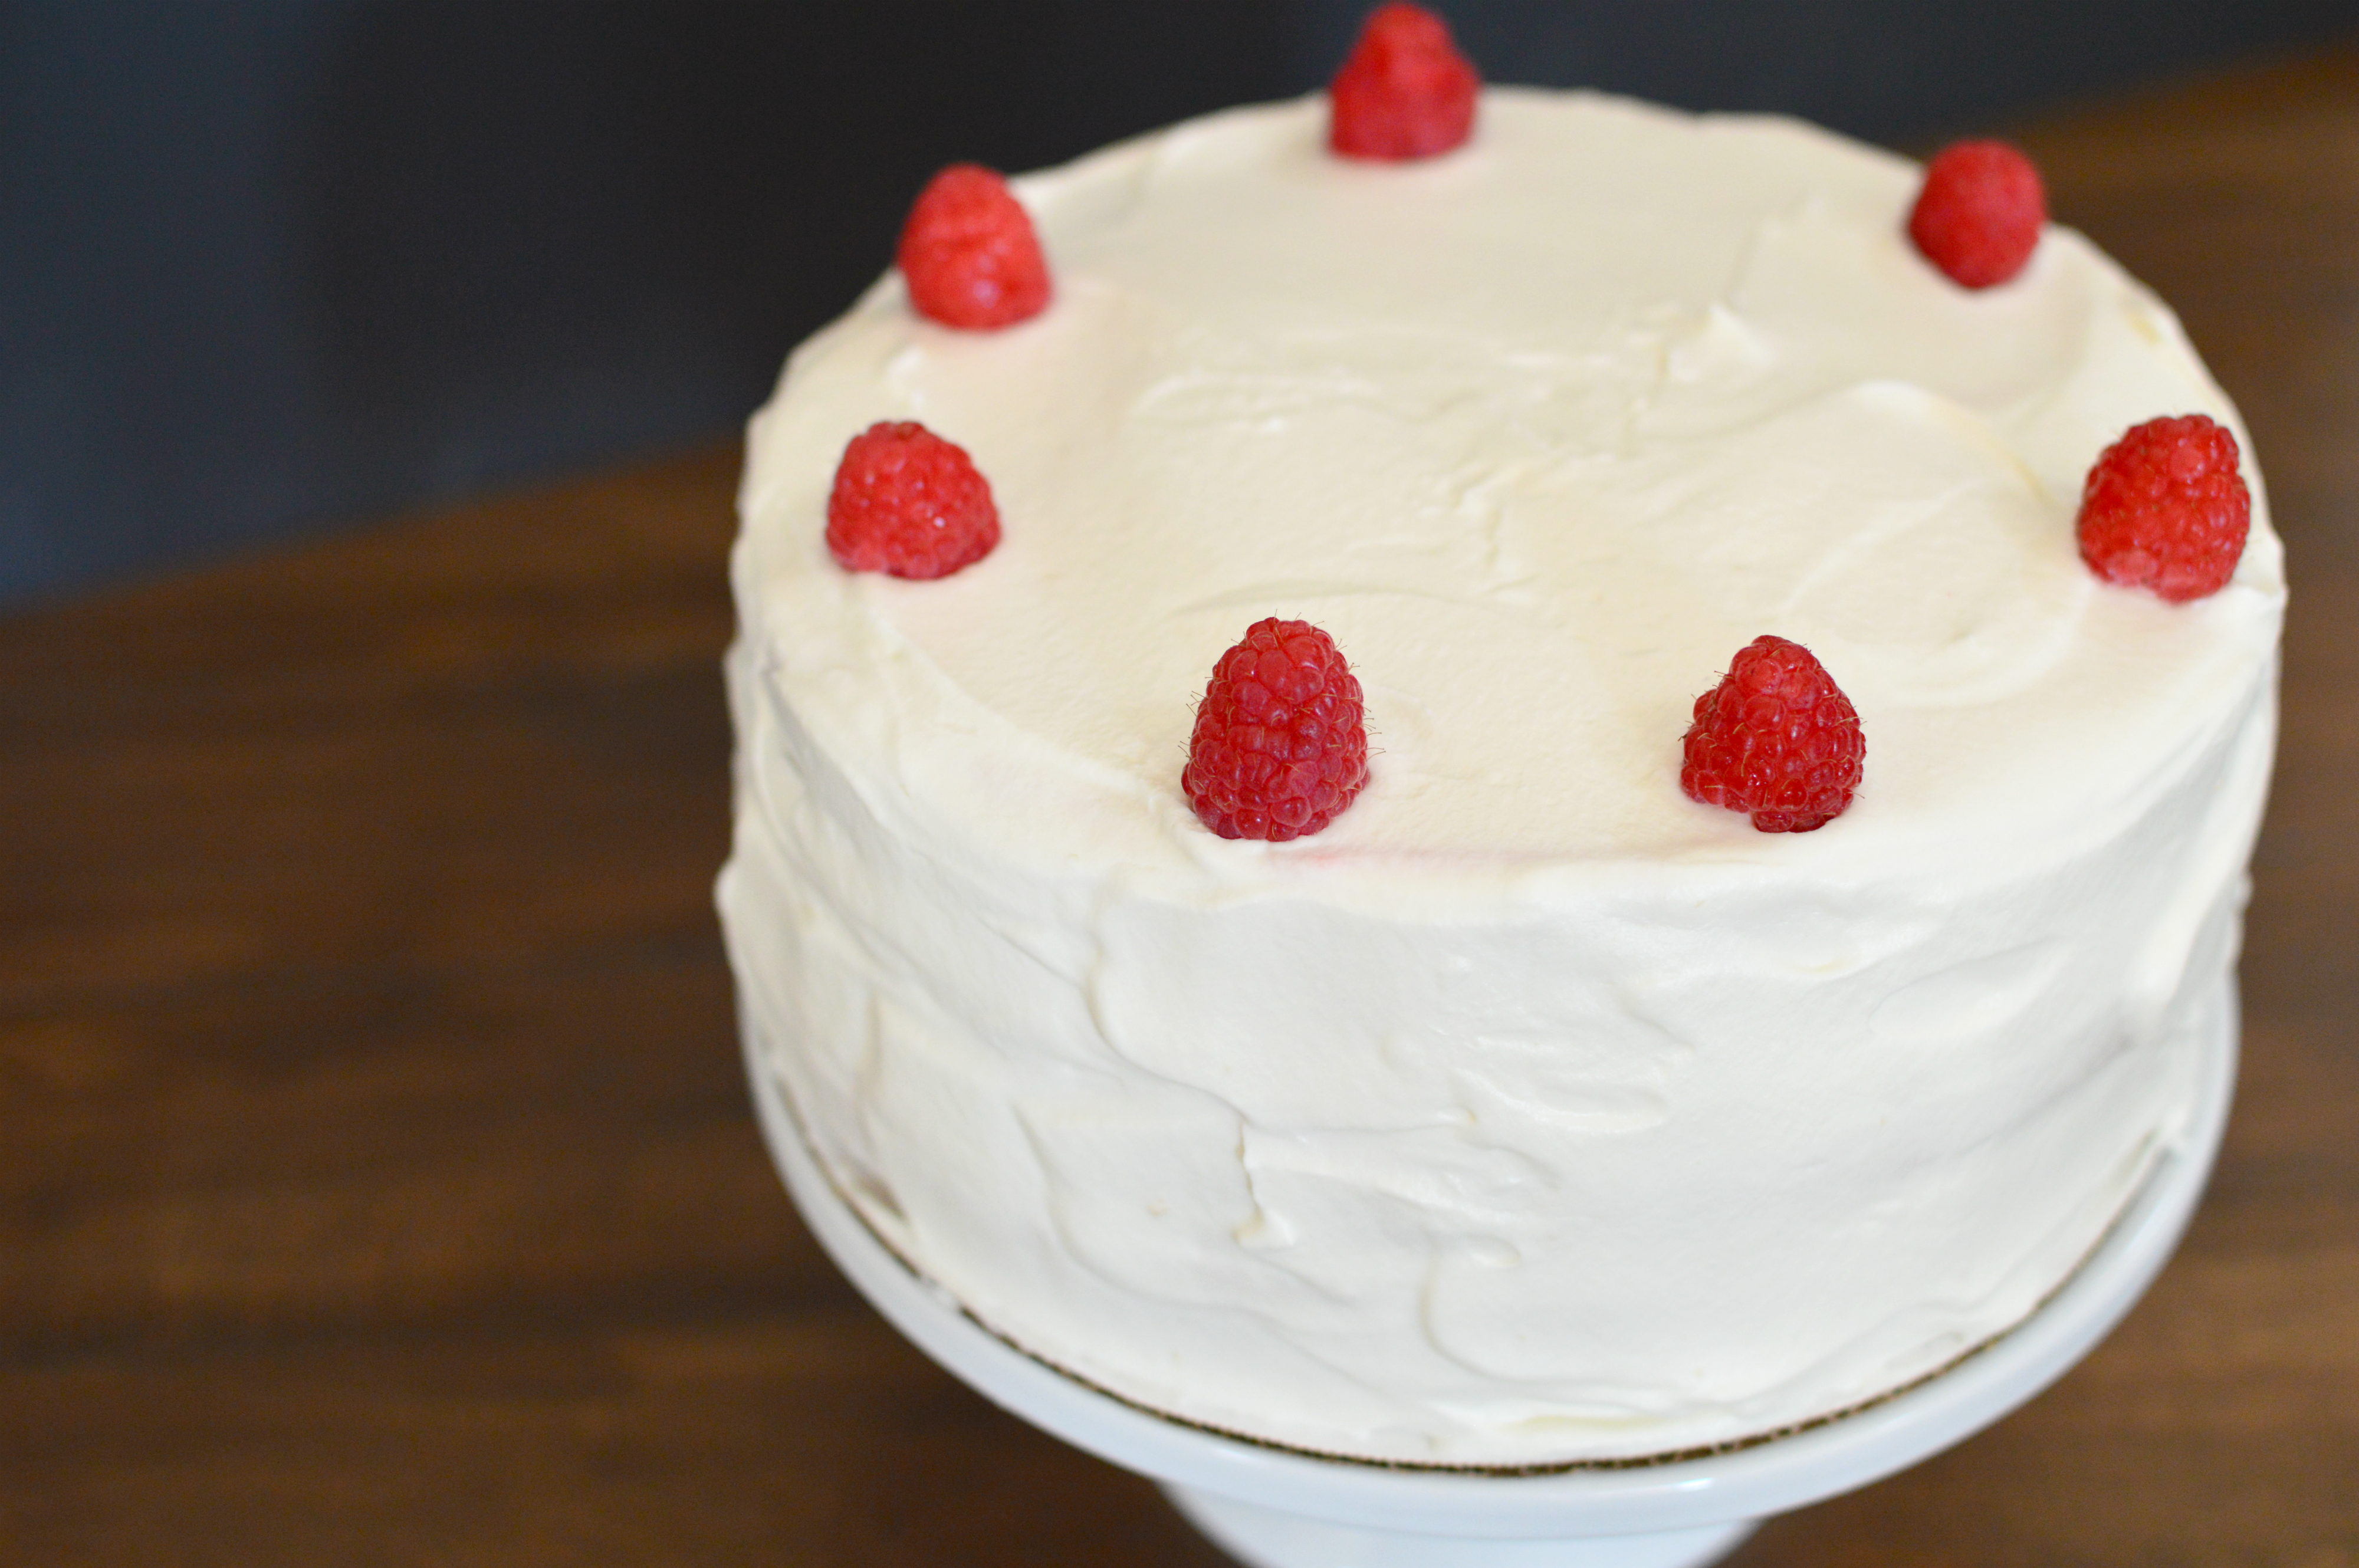 wee hacks her wedding cake - white cake with berries and whipped ...